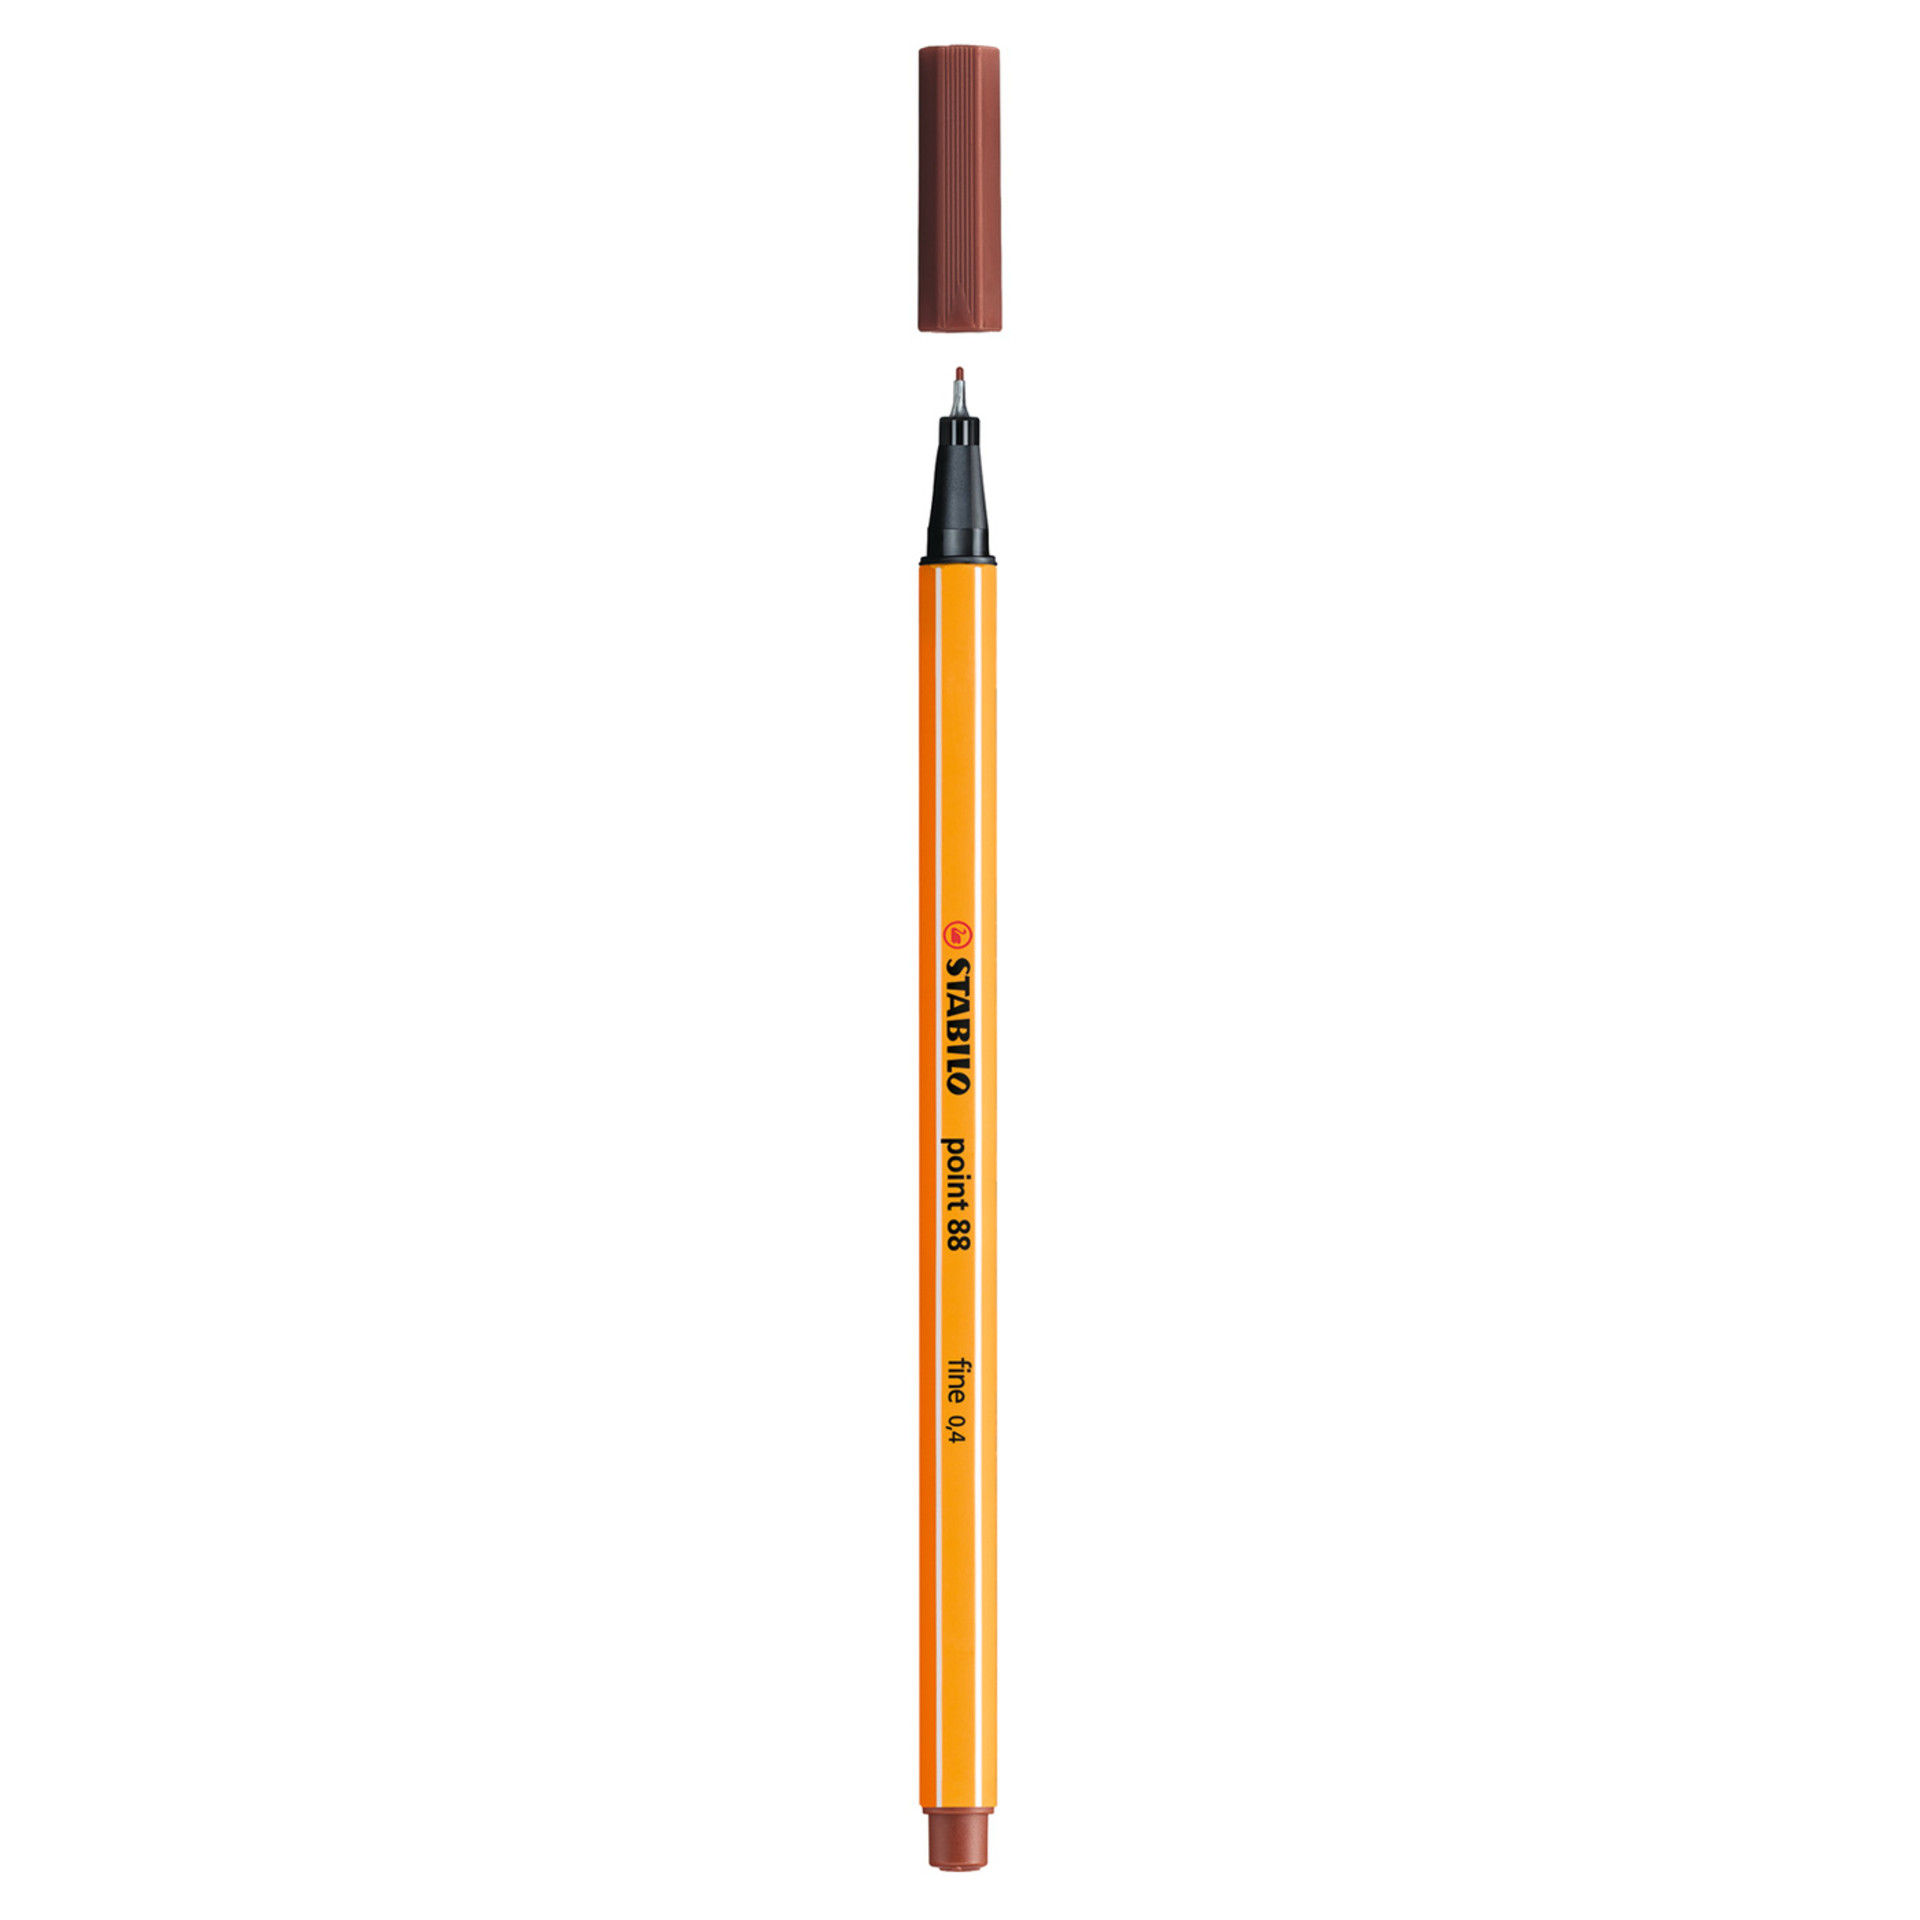 Stabilo Point 88 .4mm Fineliner Pen – Sienna